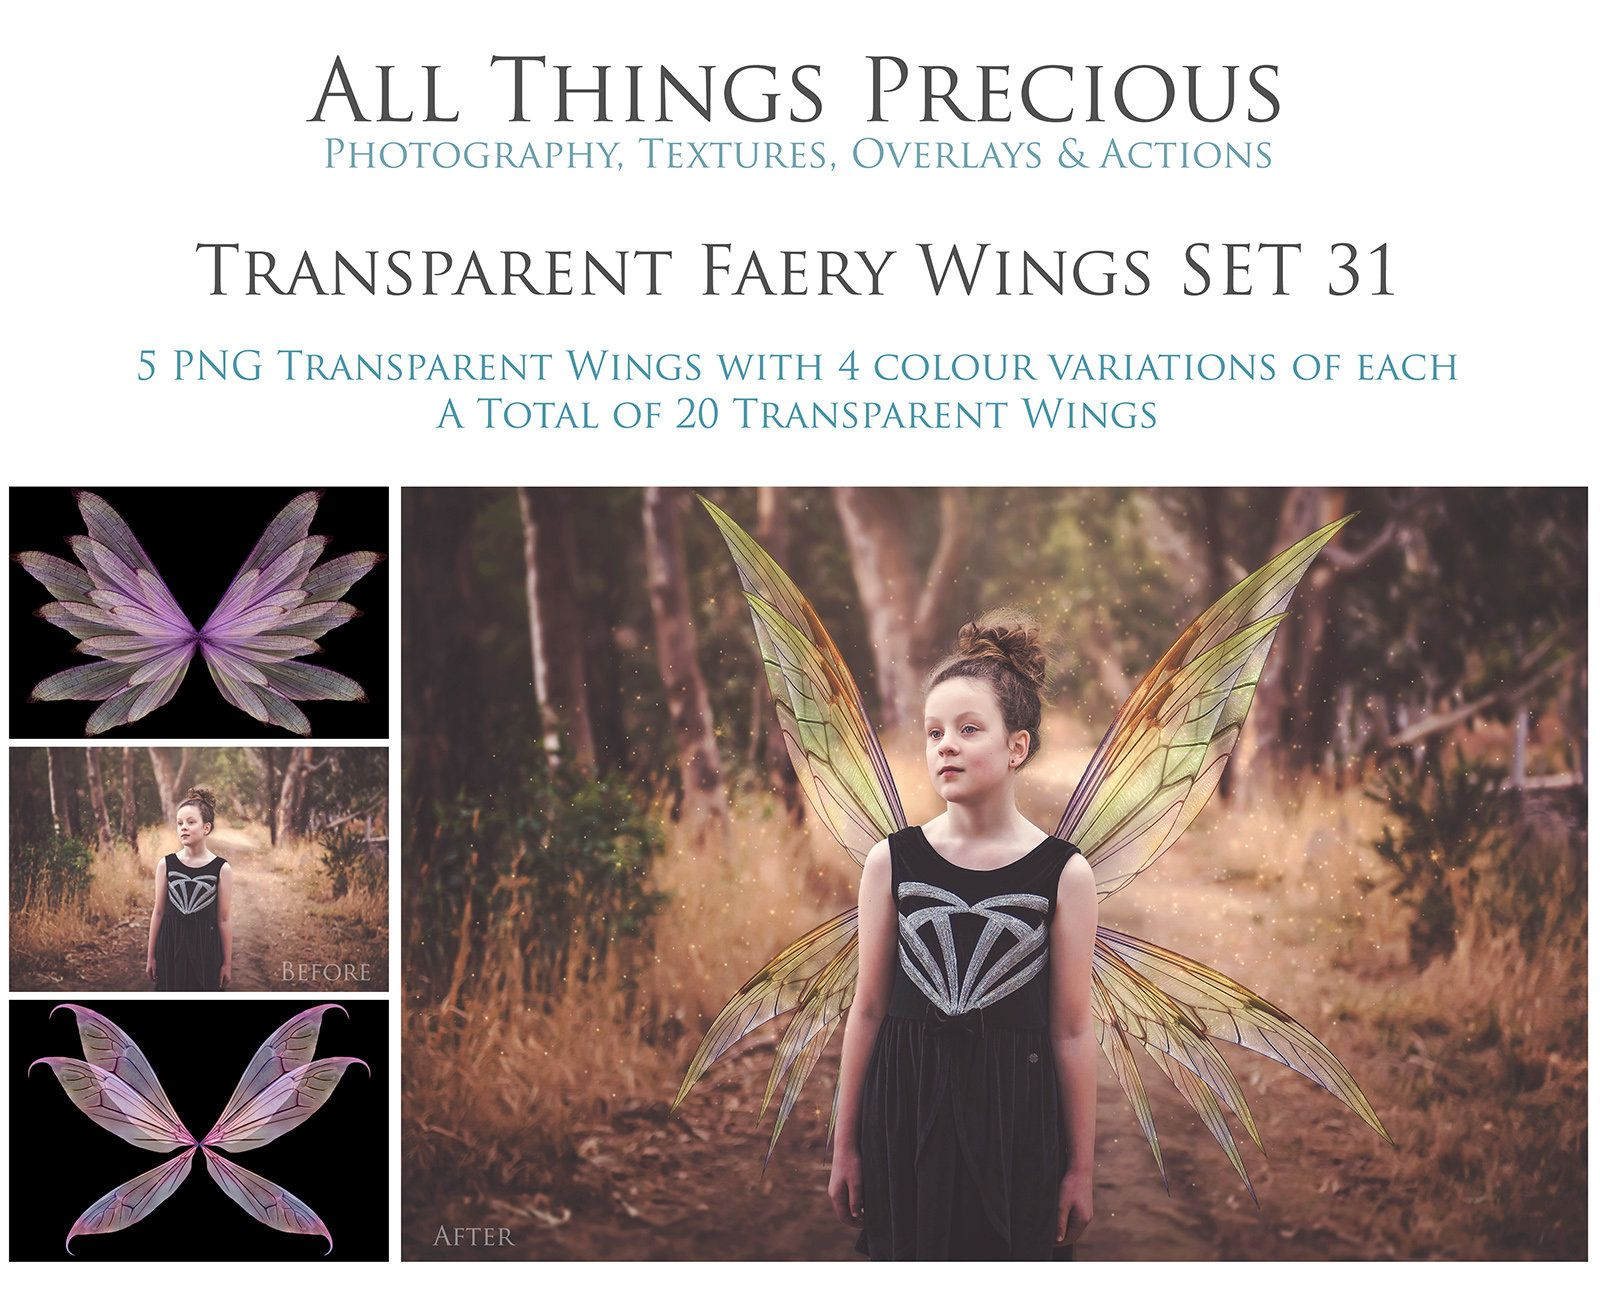 Overlays 20 Png Fairy Wings Set 31 Faery Wing Fine Art High Resolution Photography Photoshop Overlay Digital Clipart Photoshop Overlays Overlays Fairy Wings